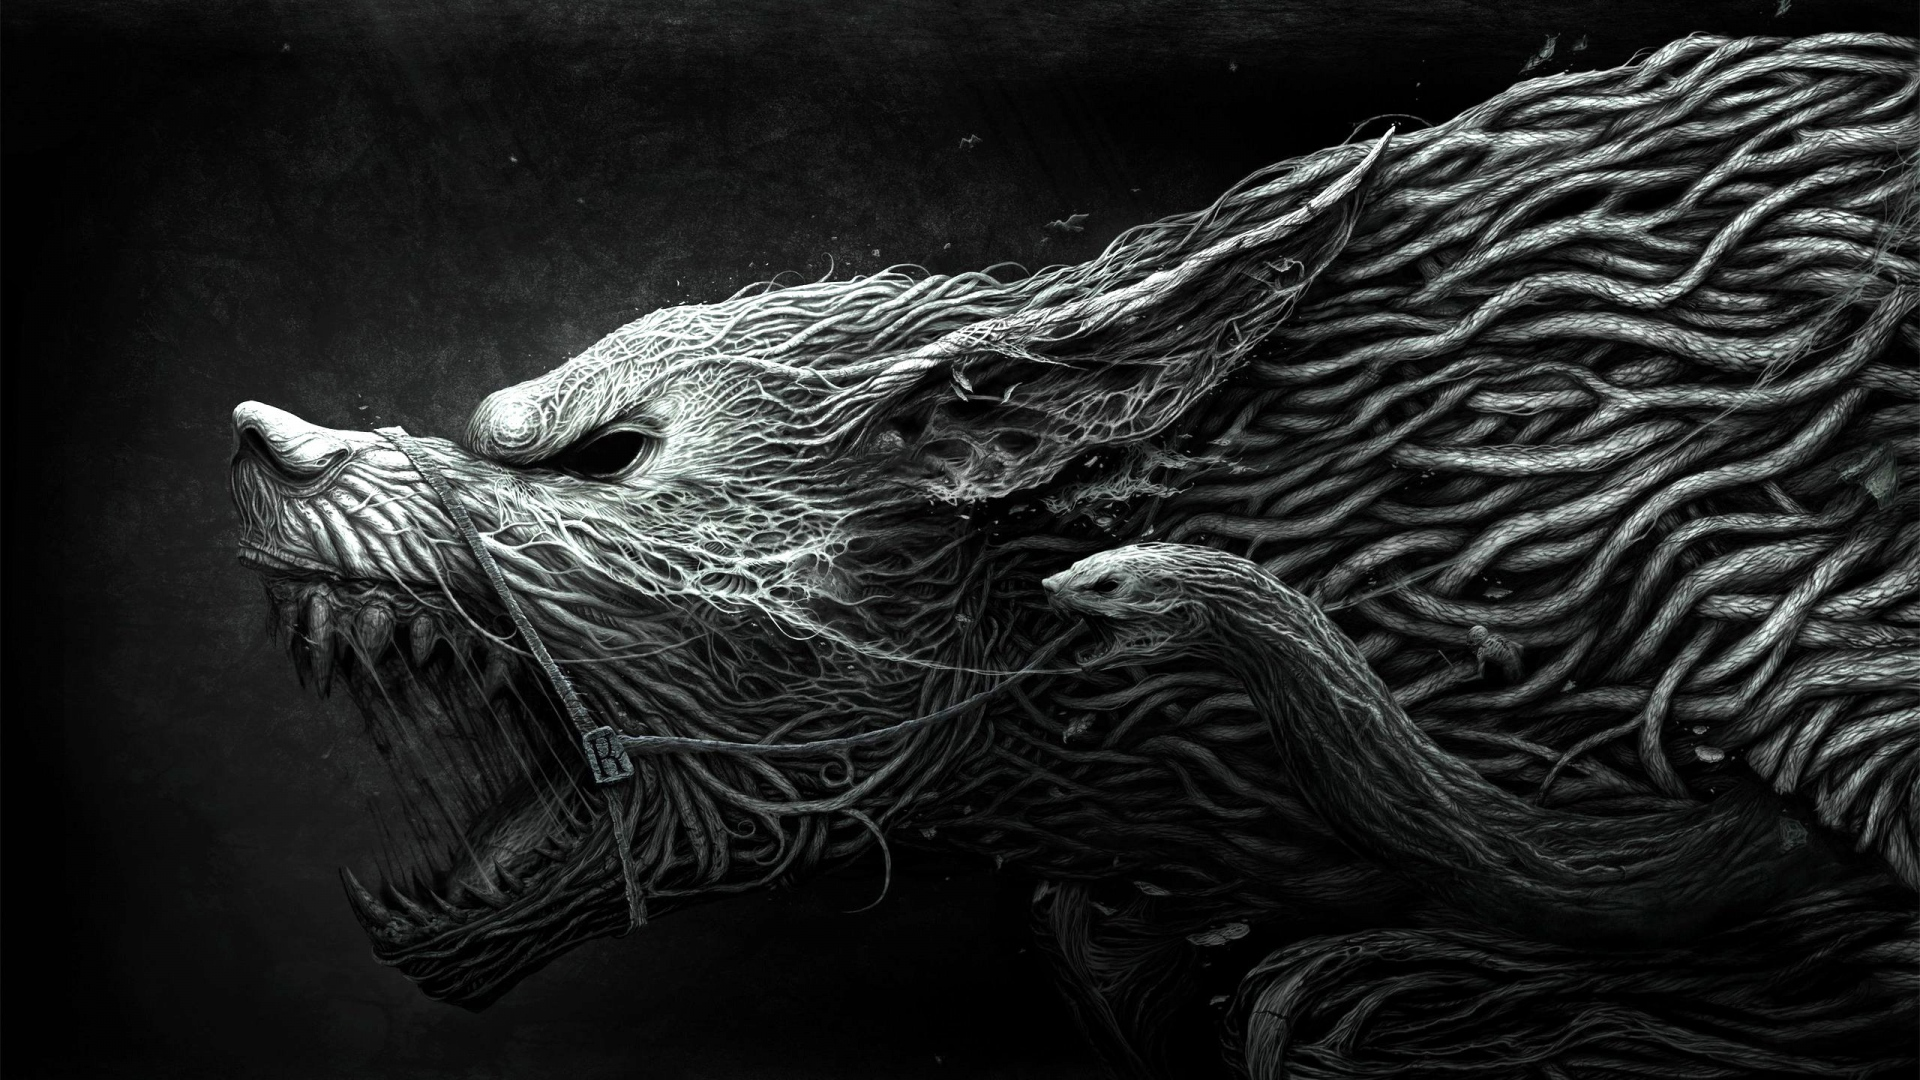 Hd wallpaper wolf - Drawing Aggression Black White Wallpaper Background Full Hd 1080p